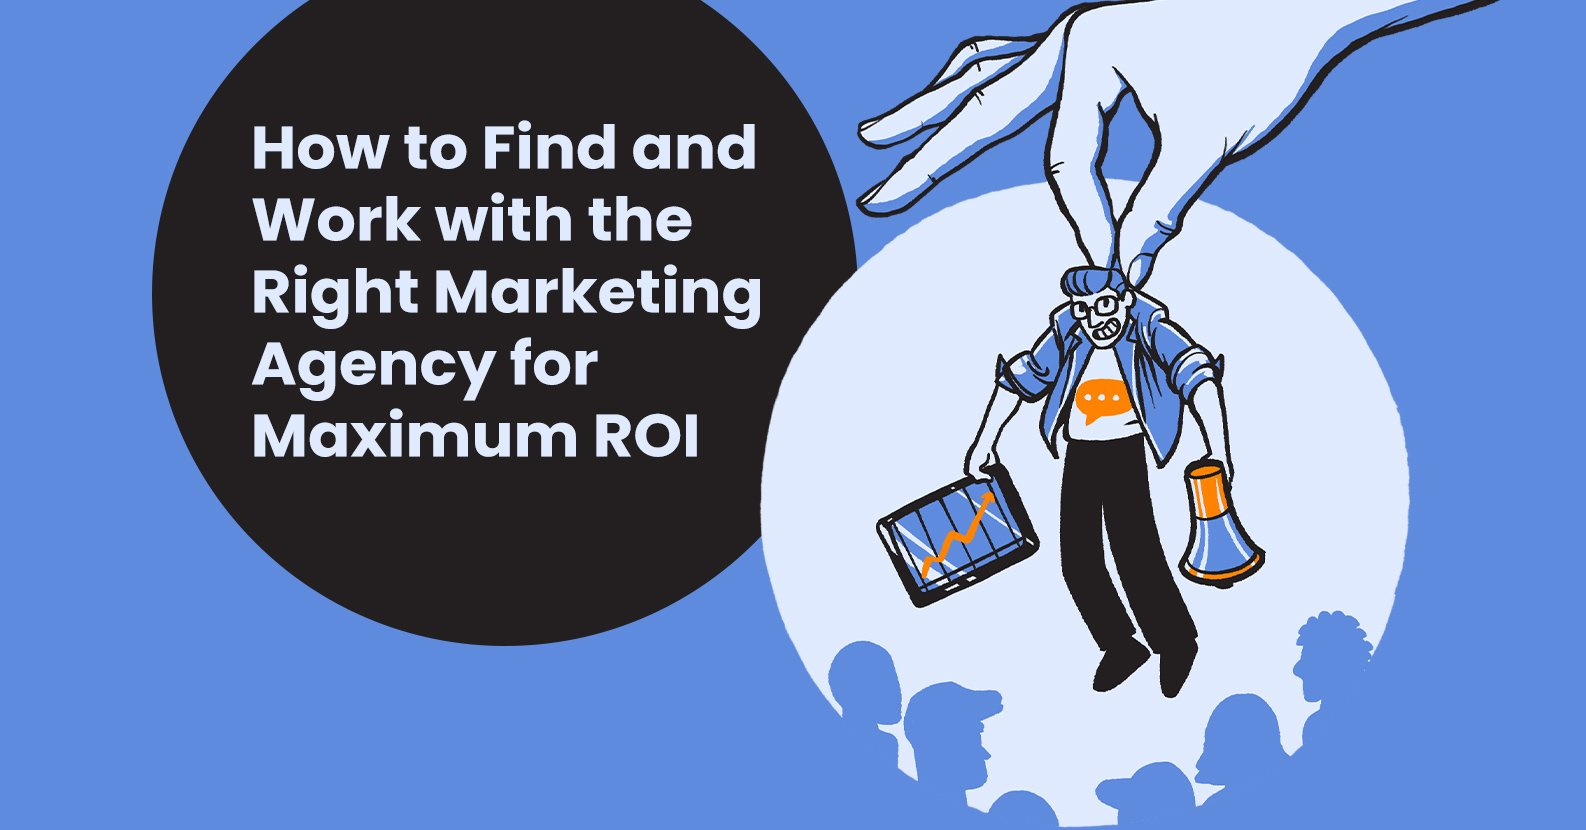 How to Find and Work with the Right Marketing Agency for Maximum ROI